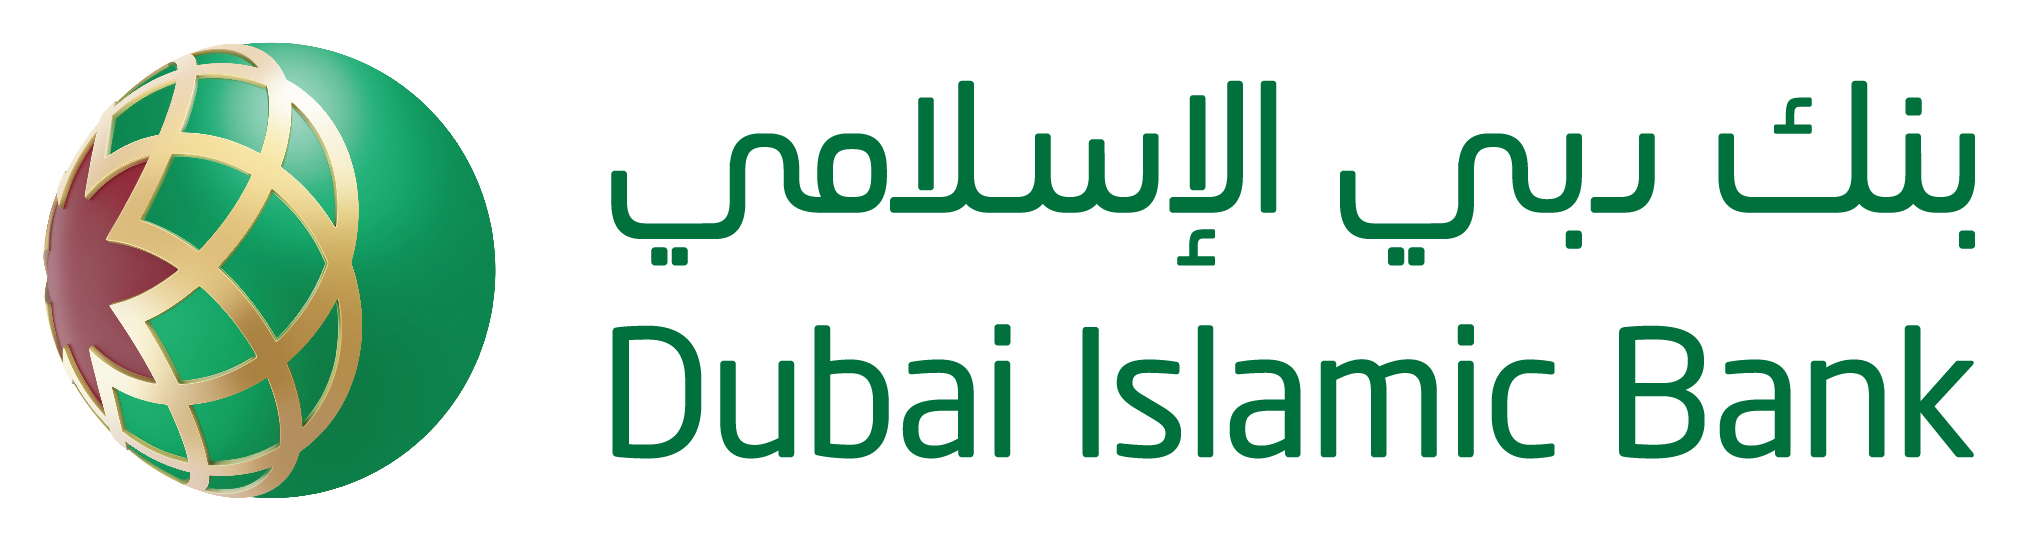 Dubai Islamic Bank - Al Islami Home Finance for Expats